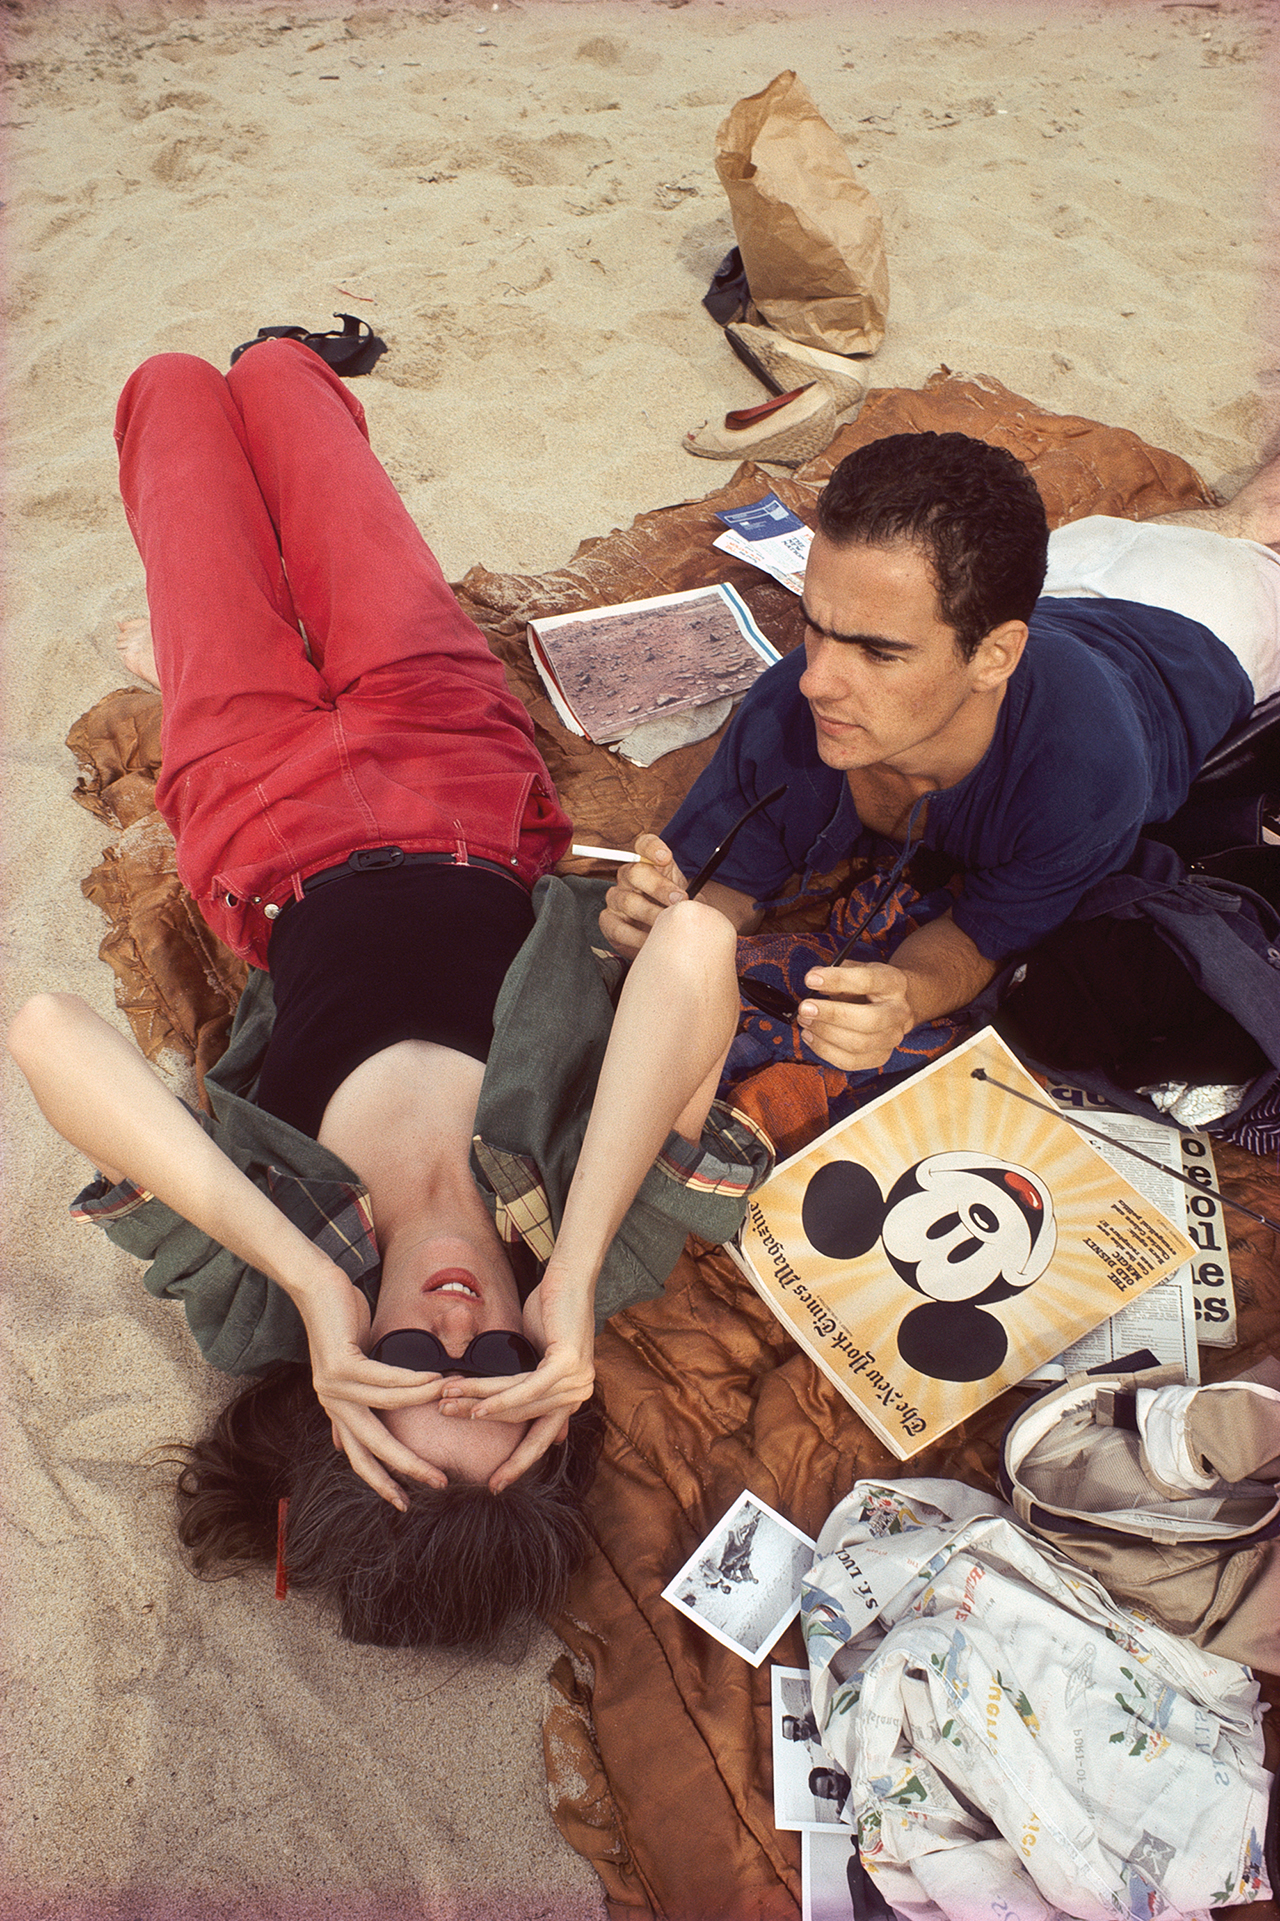 """Nan Goldin, """"C.Z. and Max on the beach, Truro, Mass. 1976,"""" from 'The Ballad of Sexual Dependency' (Aperture 2012) (© Nan Goldin) (click to enlarge)"""